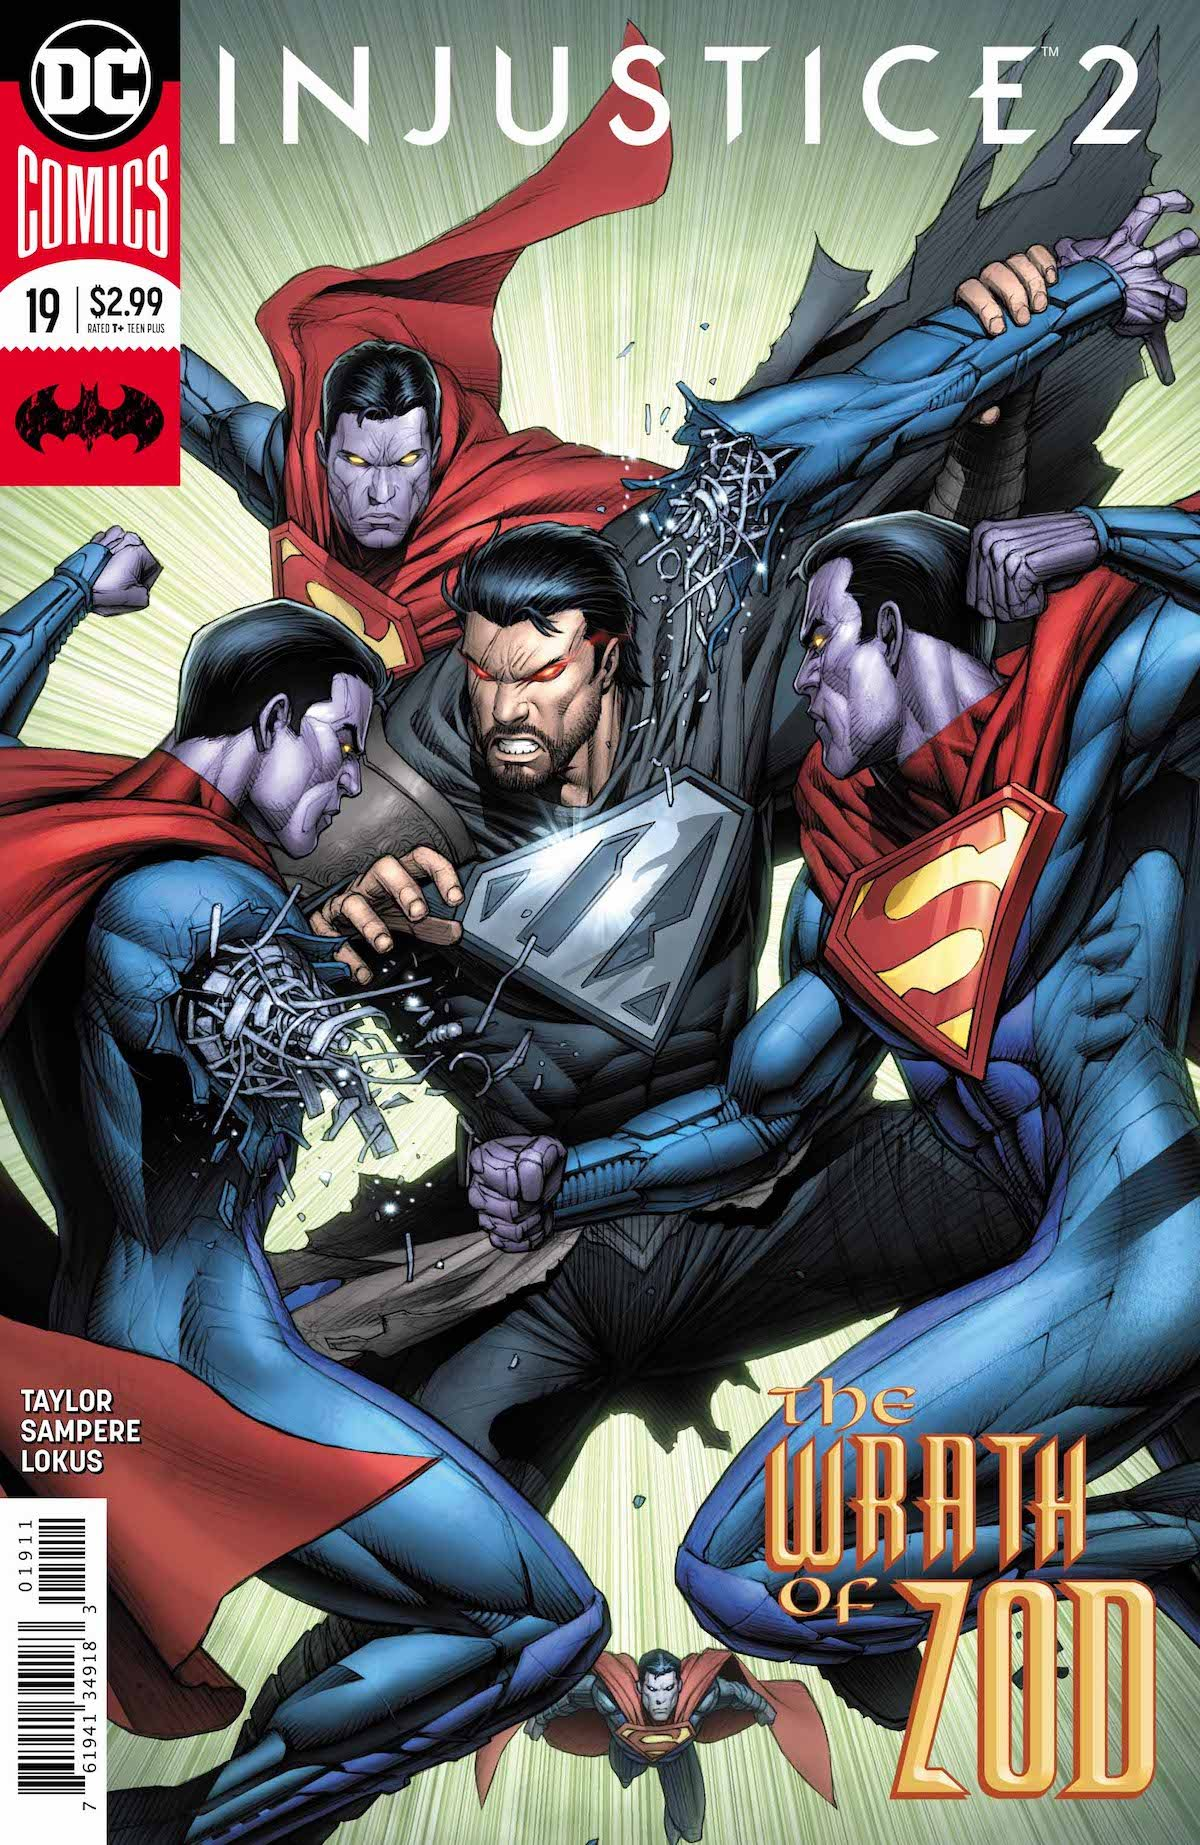 Injustice 2 #19 cover